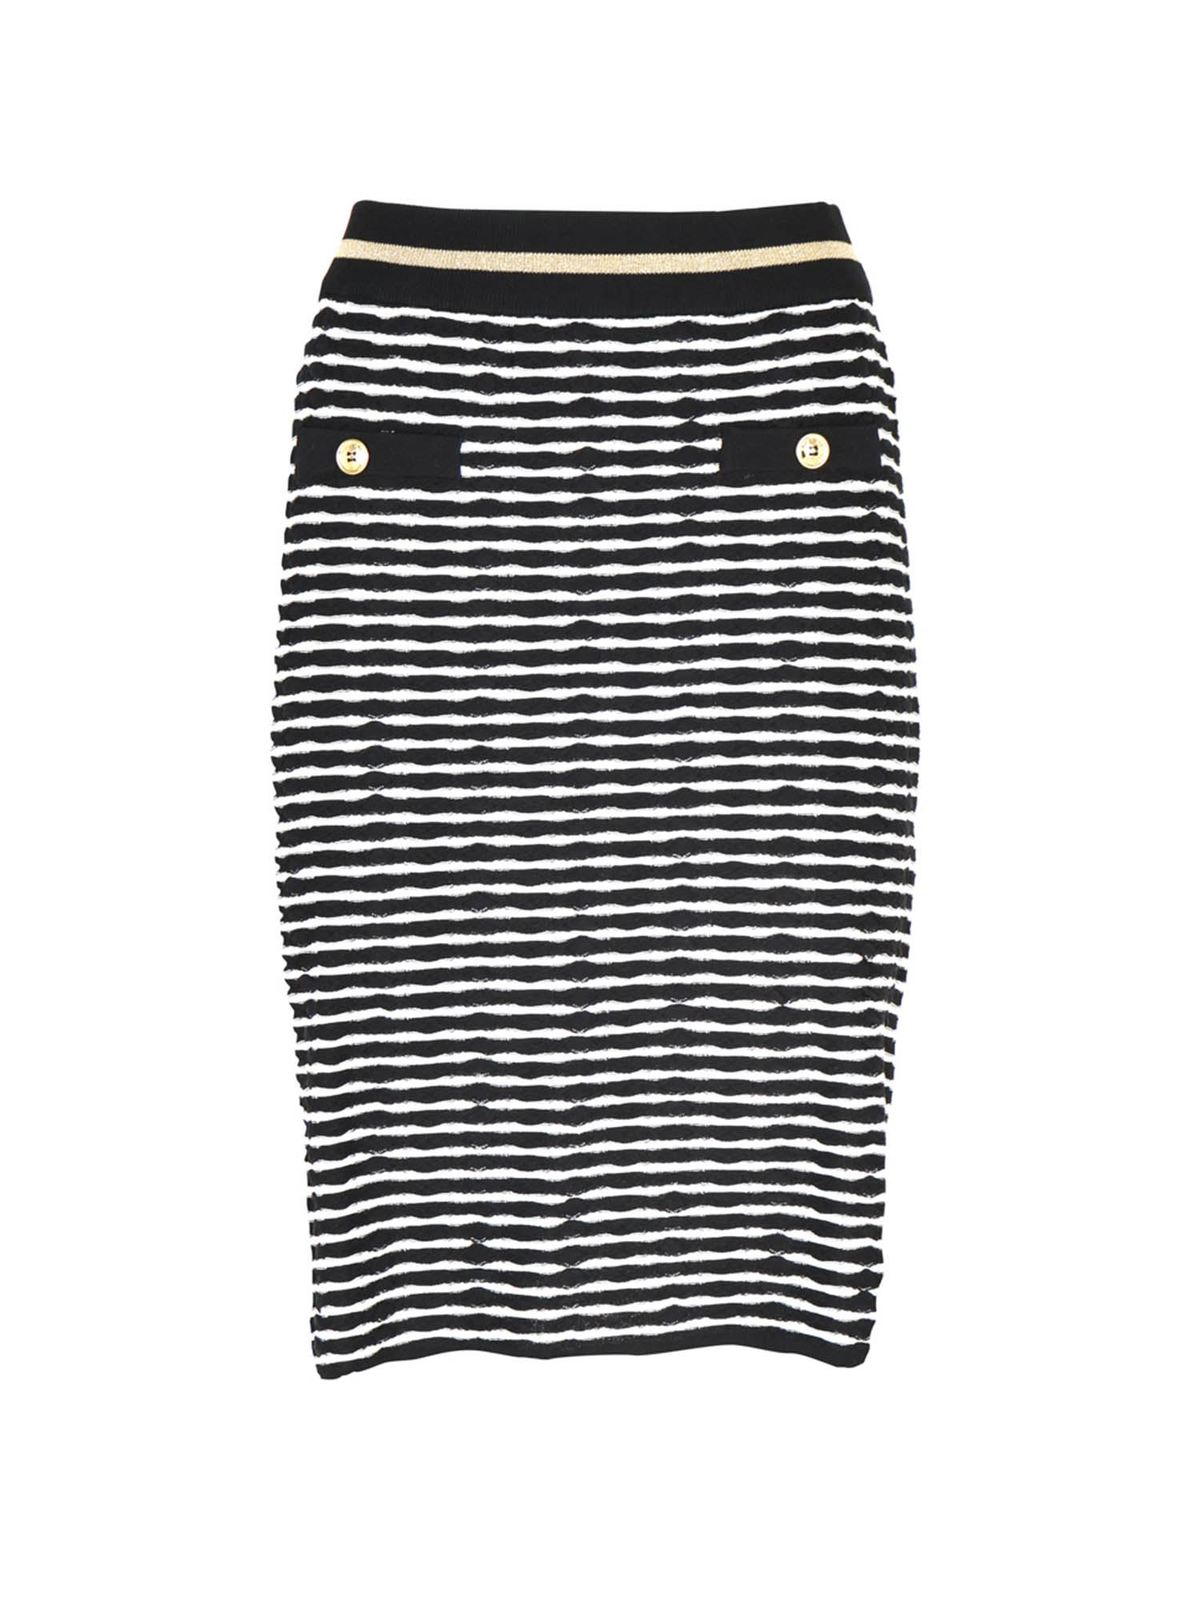 Moschino Boutique Pants STRIPED STRETCH SKIRT IN WHITE AND BLACK